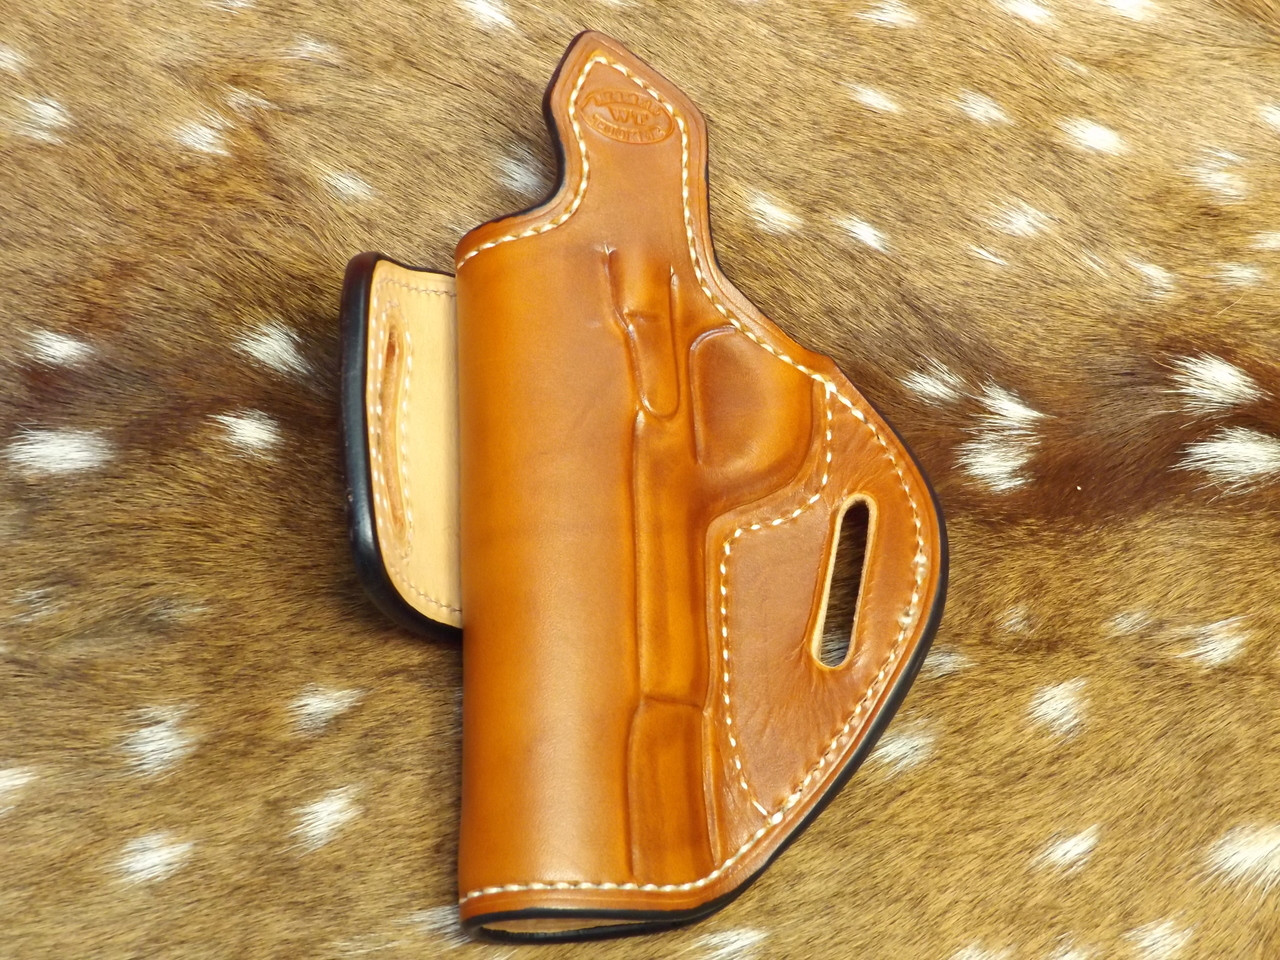 HF-1 saddle tan color, white thread with sweat tab and leather lining. Back view. Notice the burnished and dyed edges.